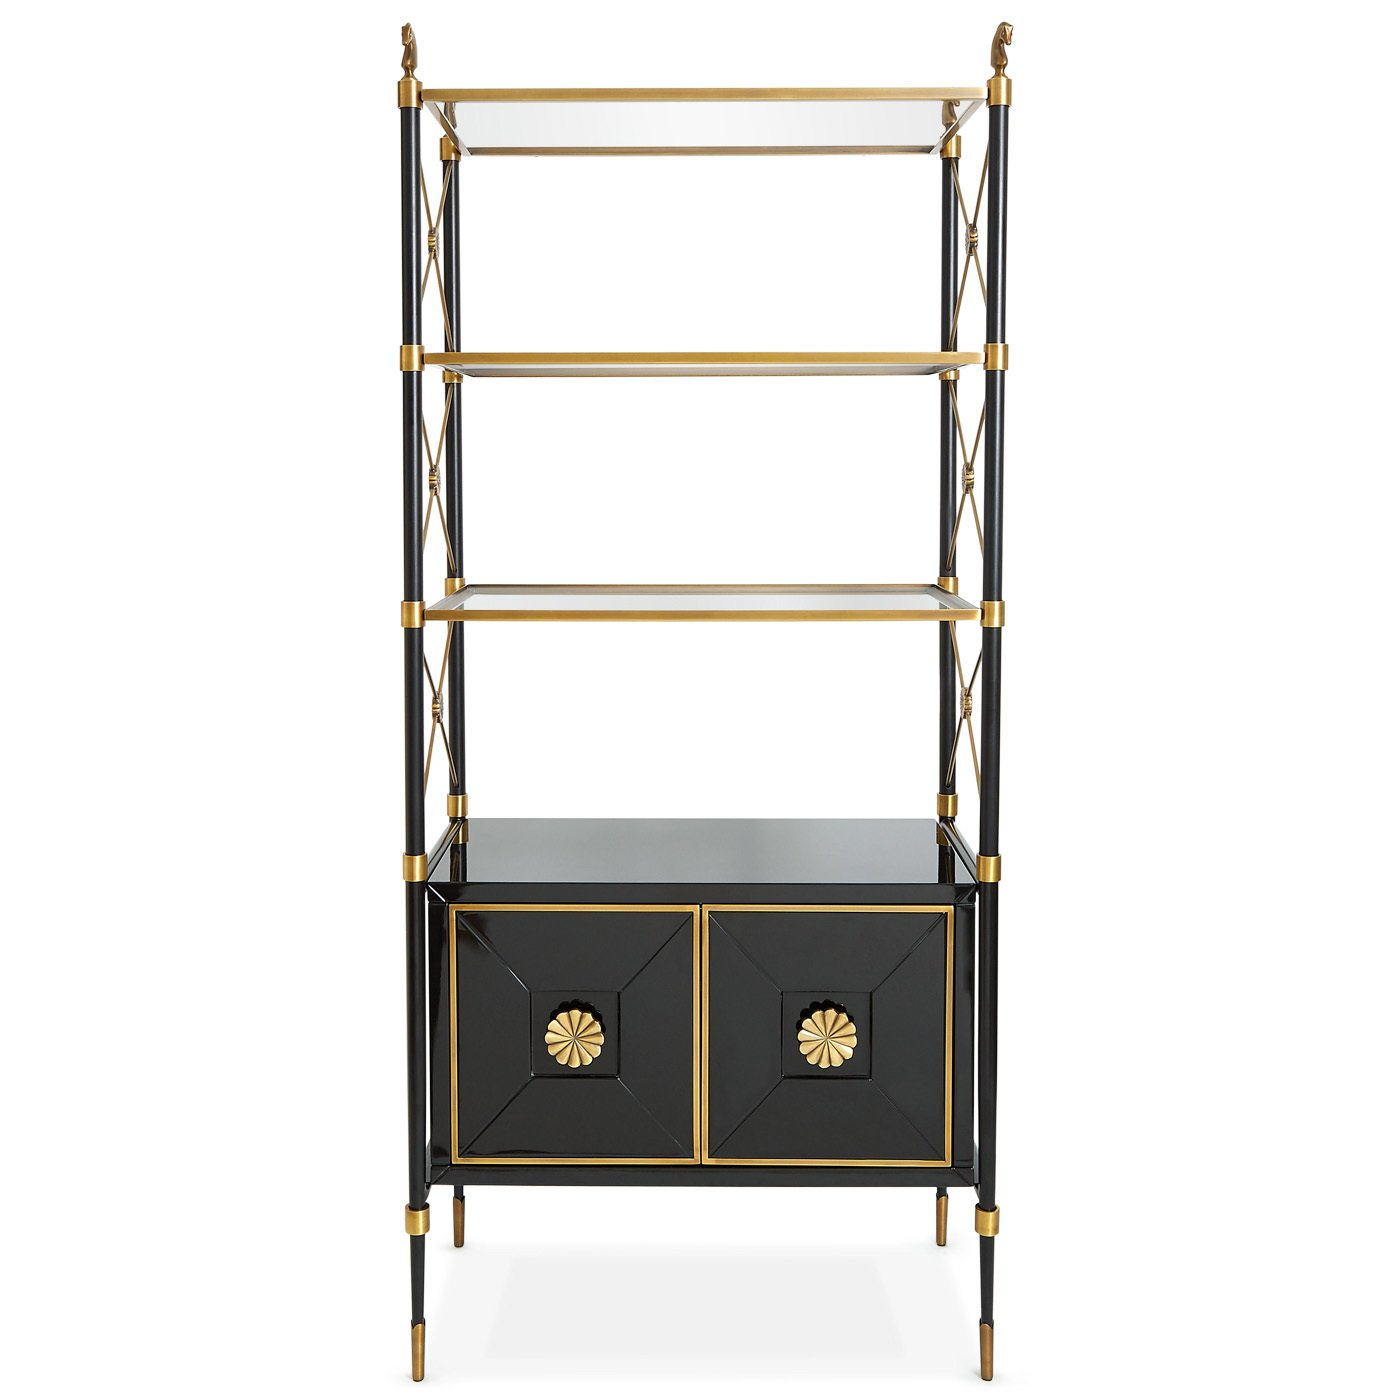 Jonathan Adler Rider Étagère ($2995) 9 Home Libraries We All Want to Curl Up in This Weekend - Photo 4 of 18